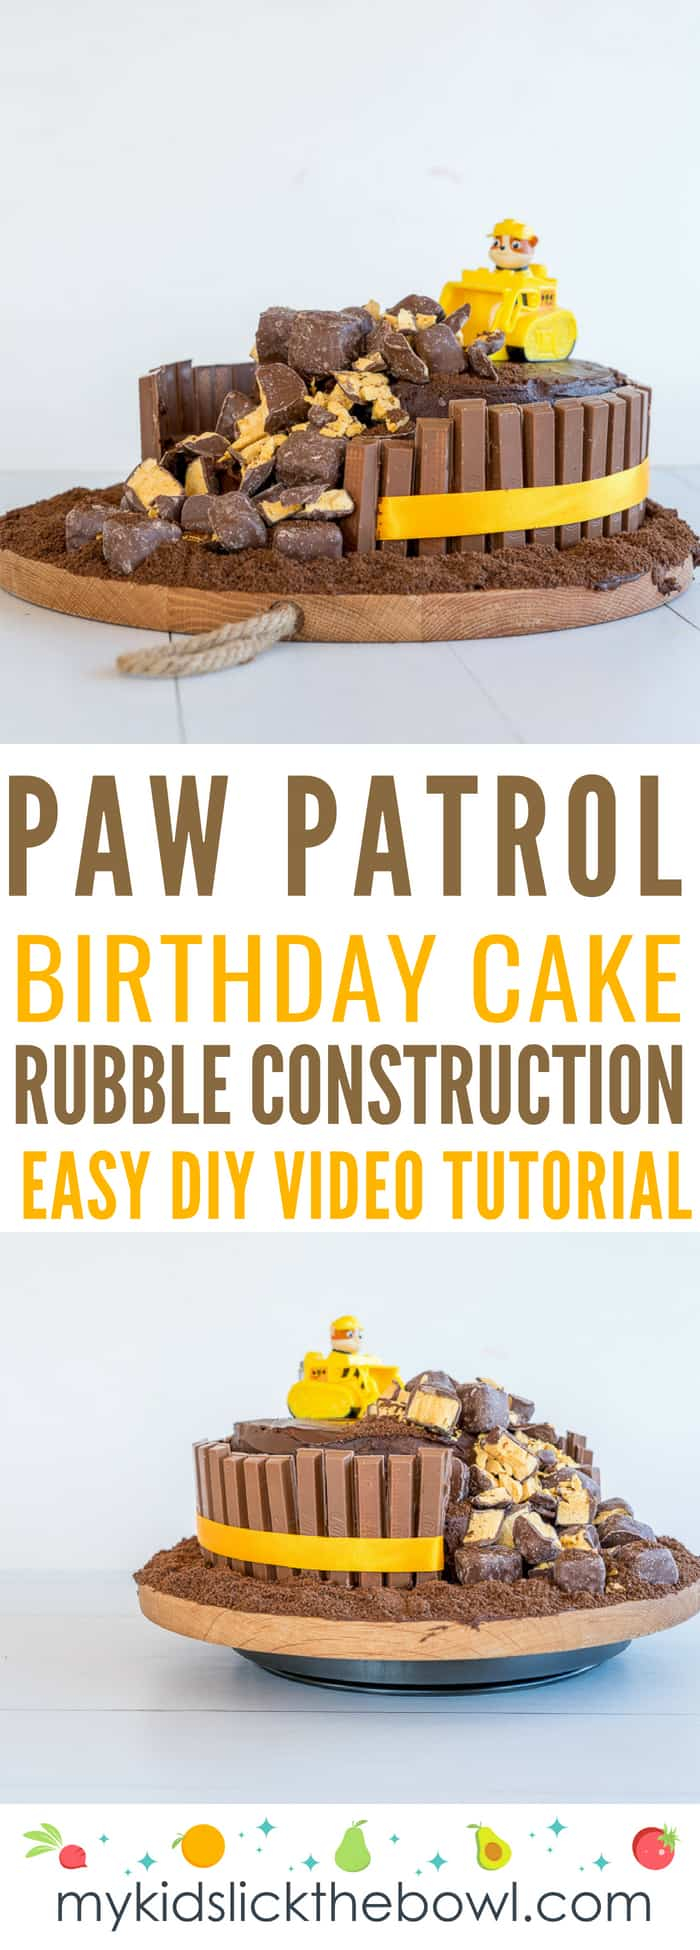 Paw Patrol Birthday Cake Ideas Paw Patrol Birthday Cake Easy Diy Tutorial Videp